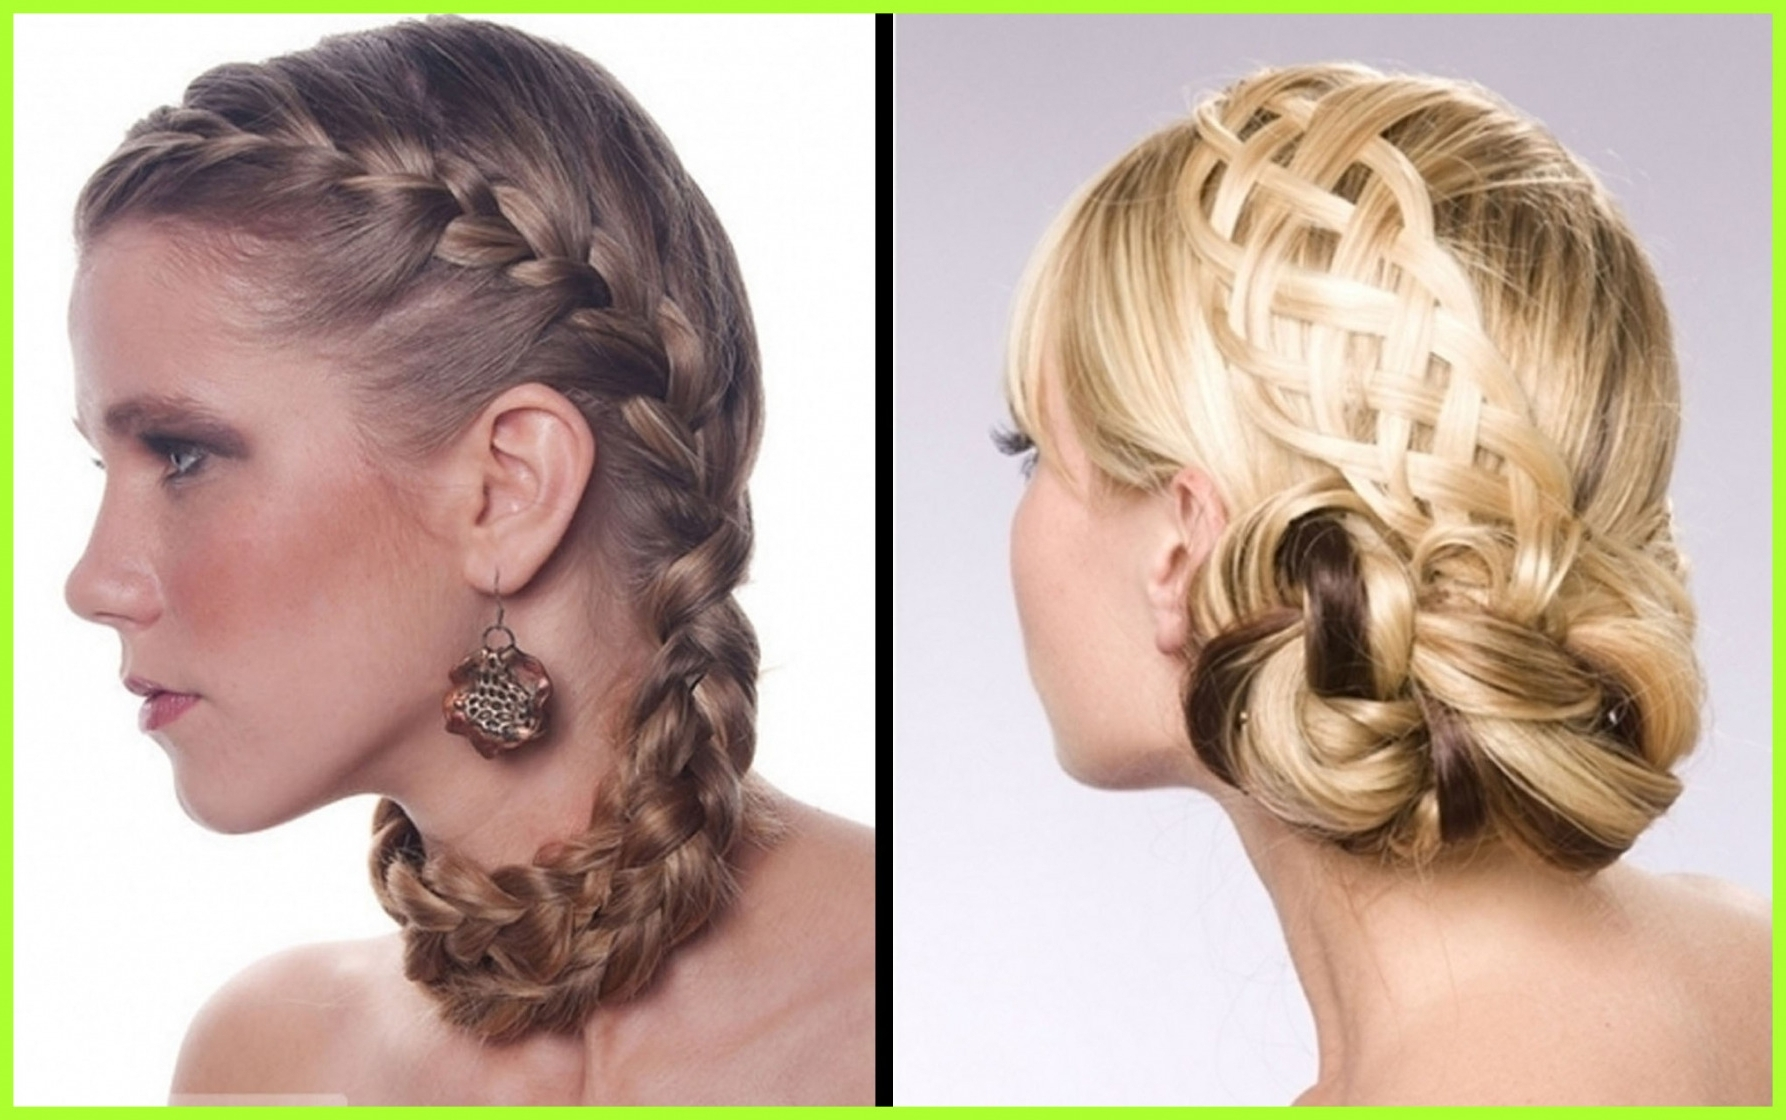 Awesome Braided Updo Hairstyles Hair Salon Formal For Women Medium With Regard To Most Recent Braided Updo Hairstyles For Medium Hair (View 4 of 15)